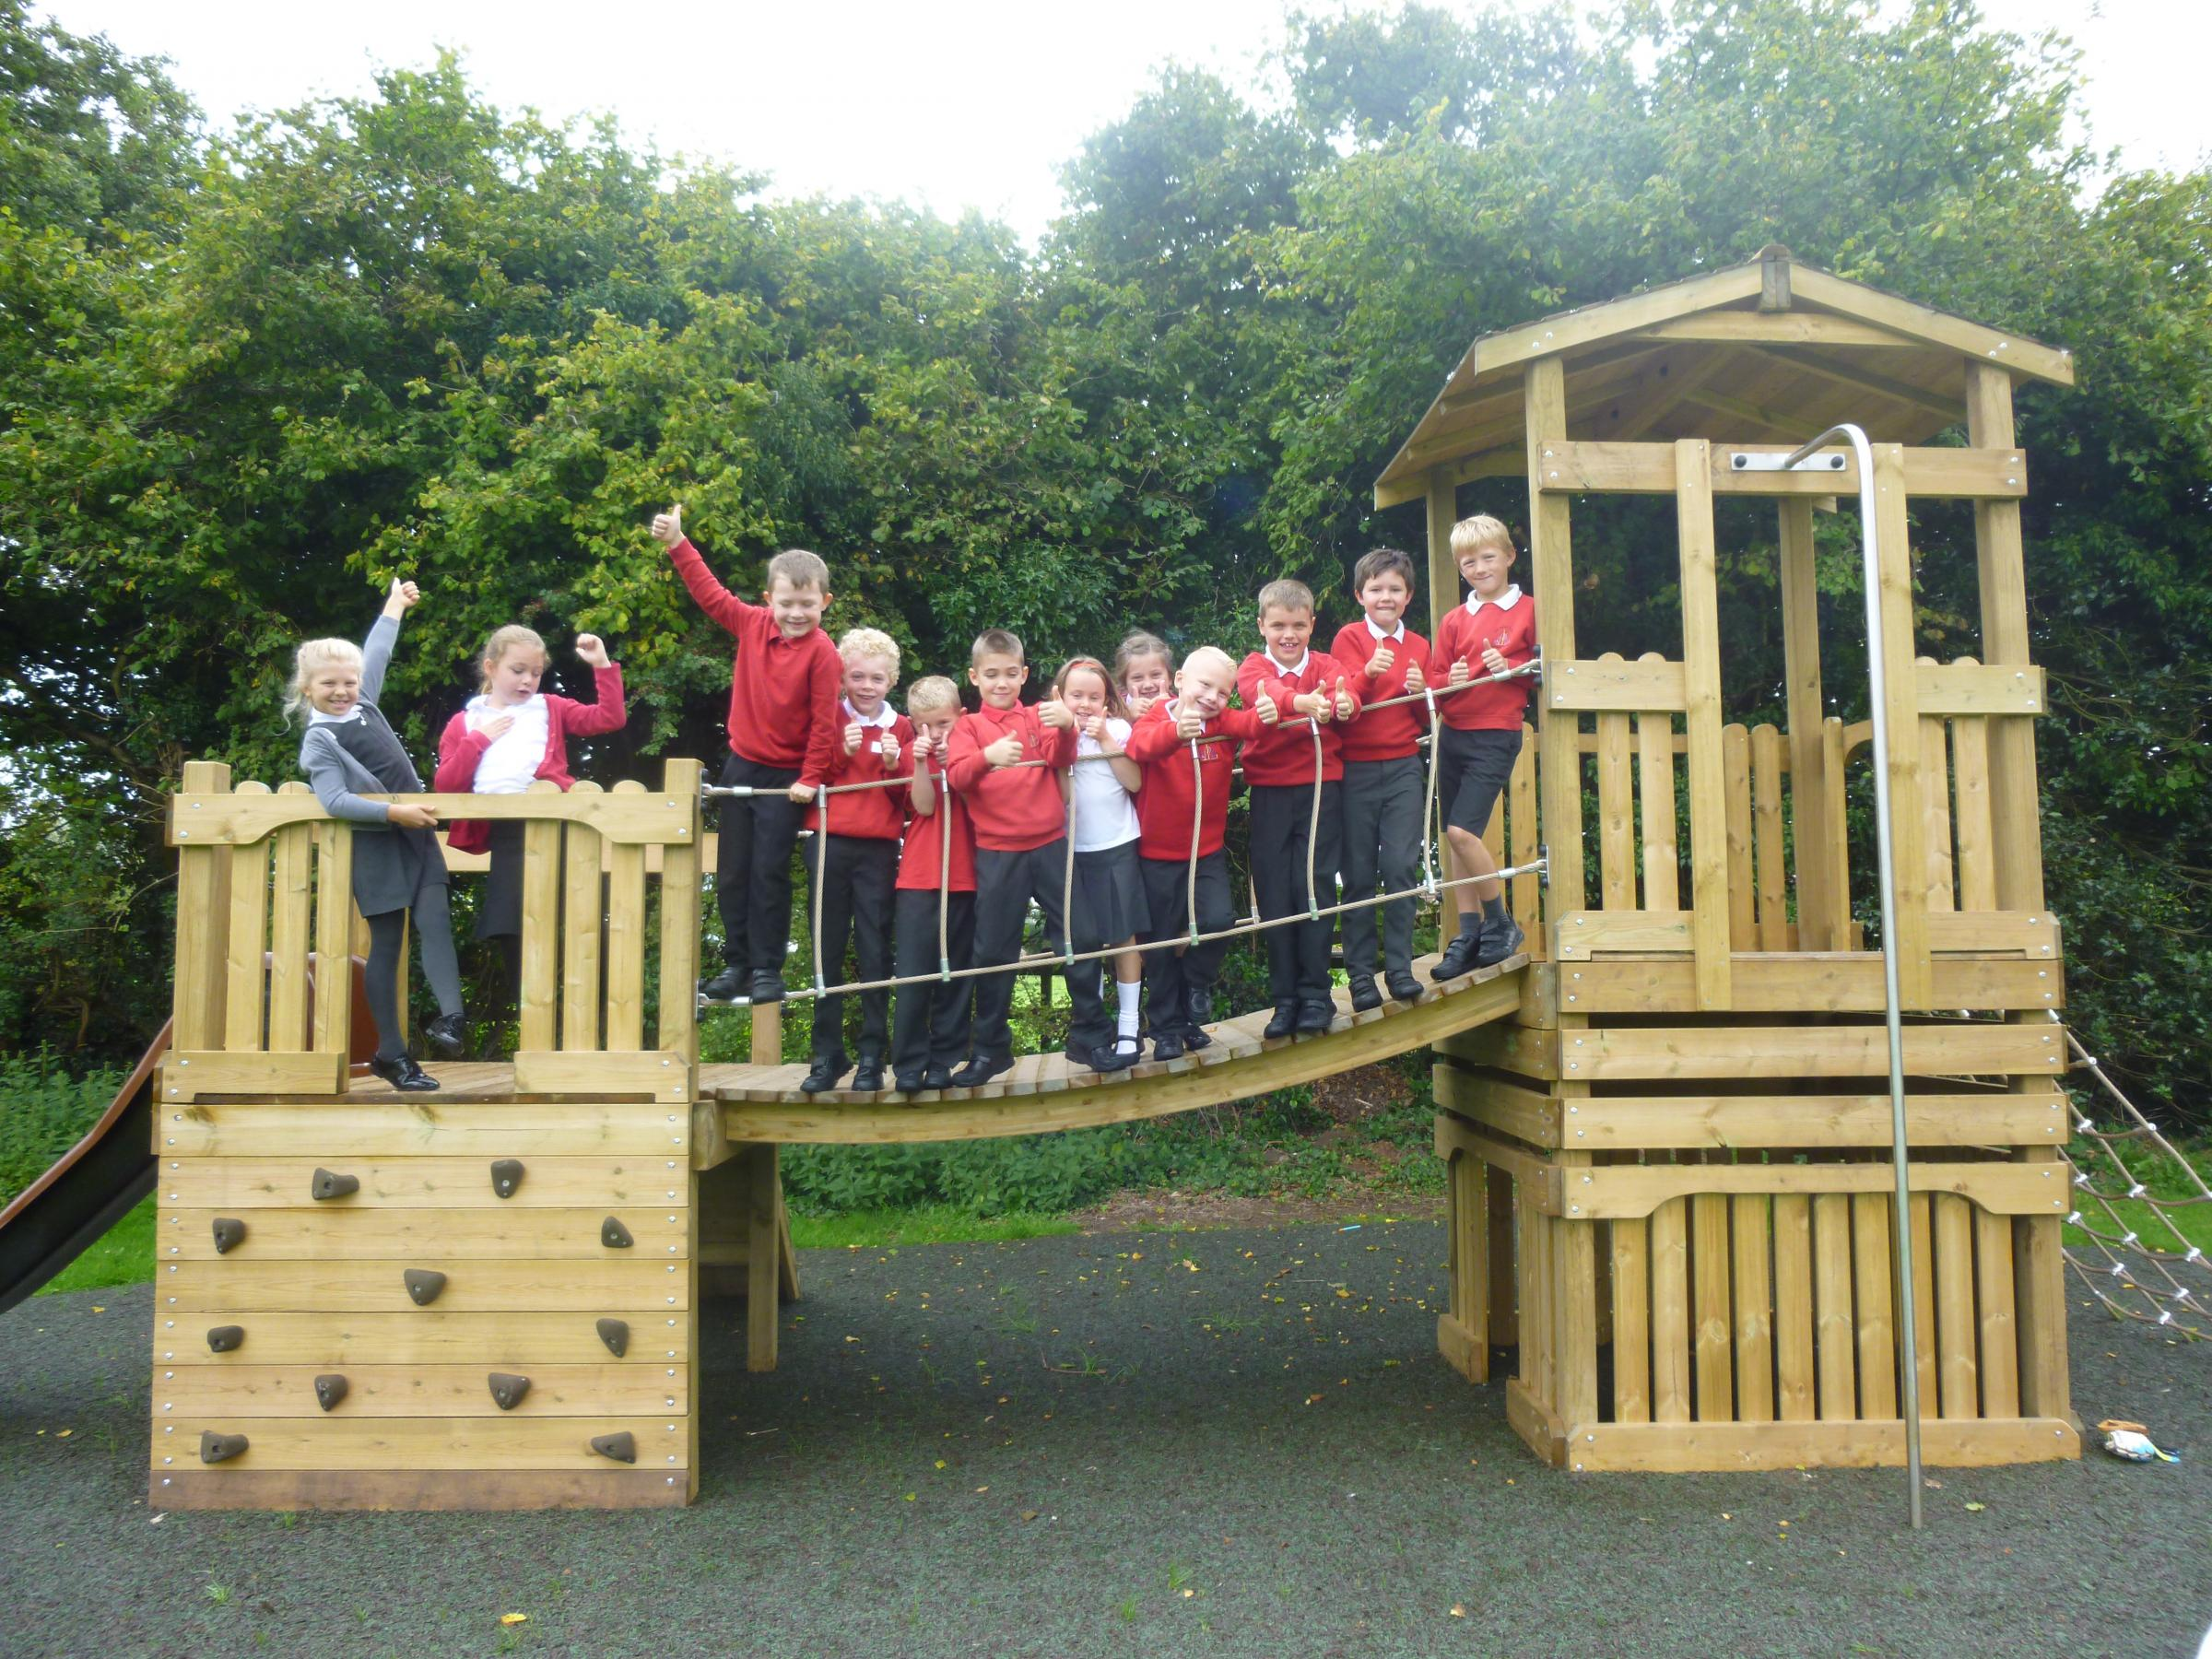 Iron Acton primary school gets exciting new play equipment